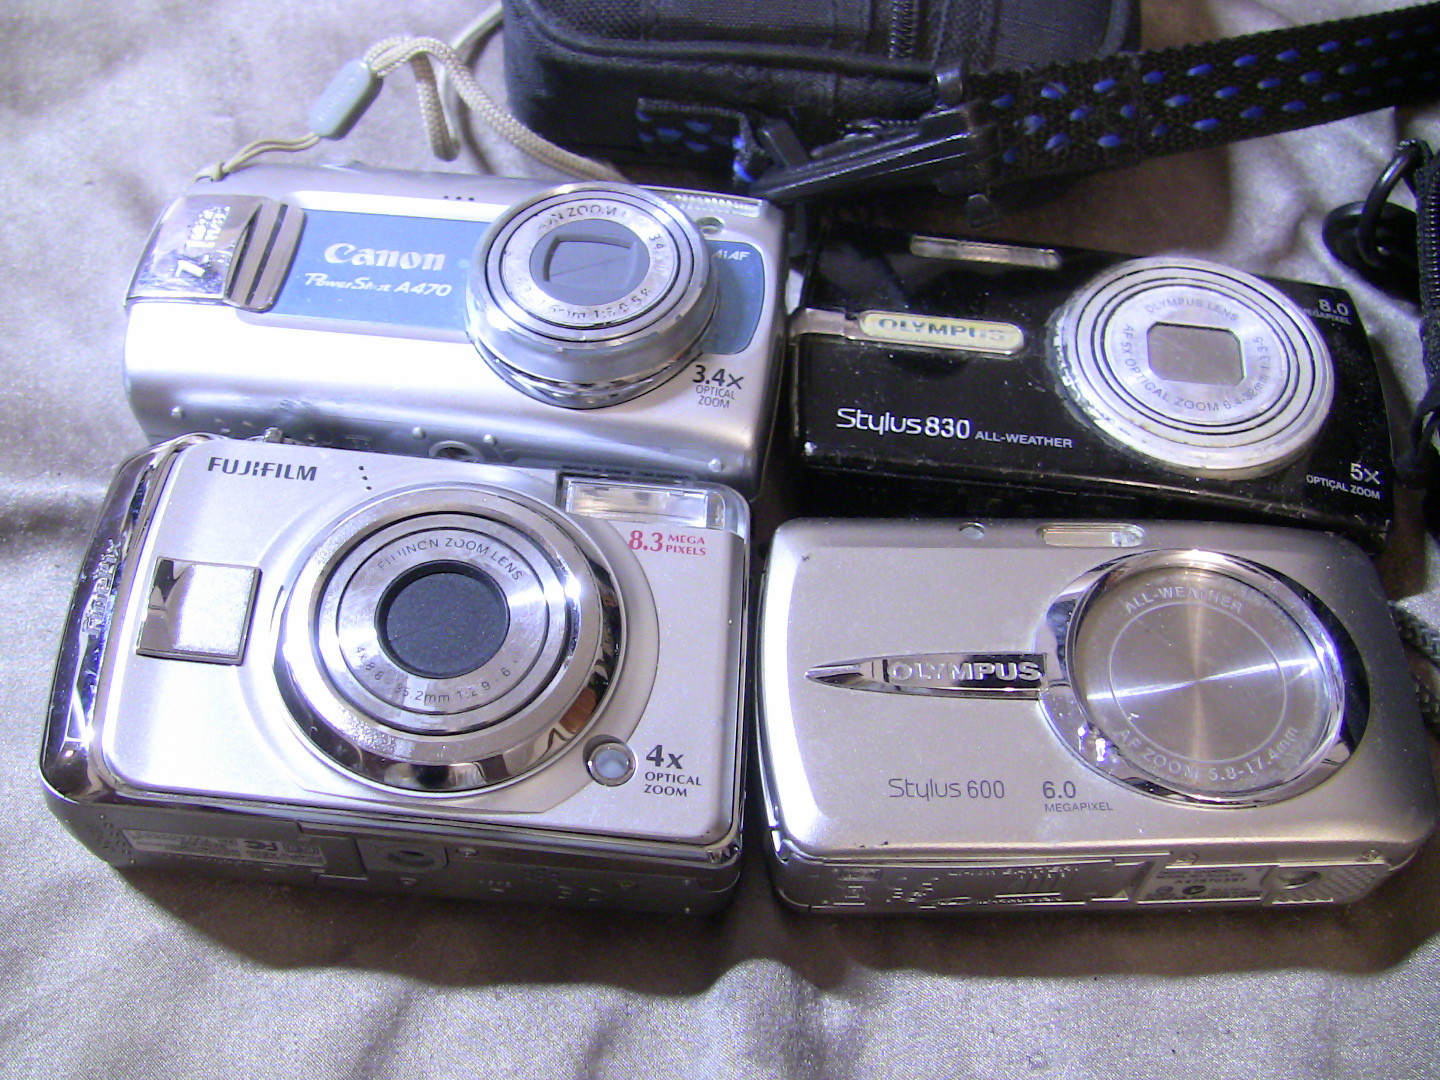 Primary image for Digital Camera Lot For Parts -Fujifilm 8.3mp Canon Powershot A470 Stylus 600 830